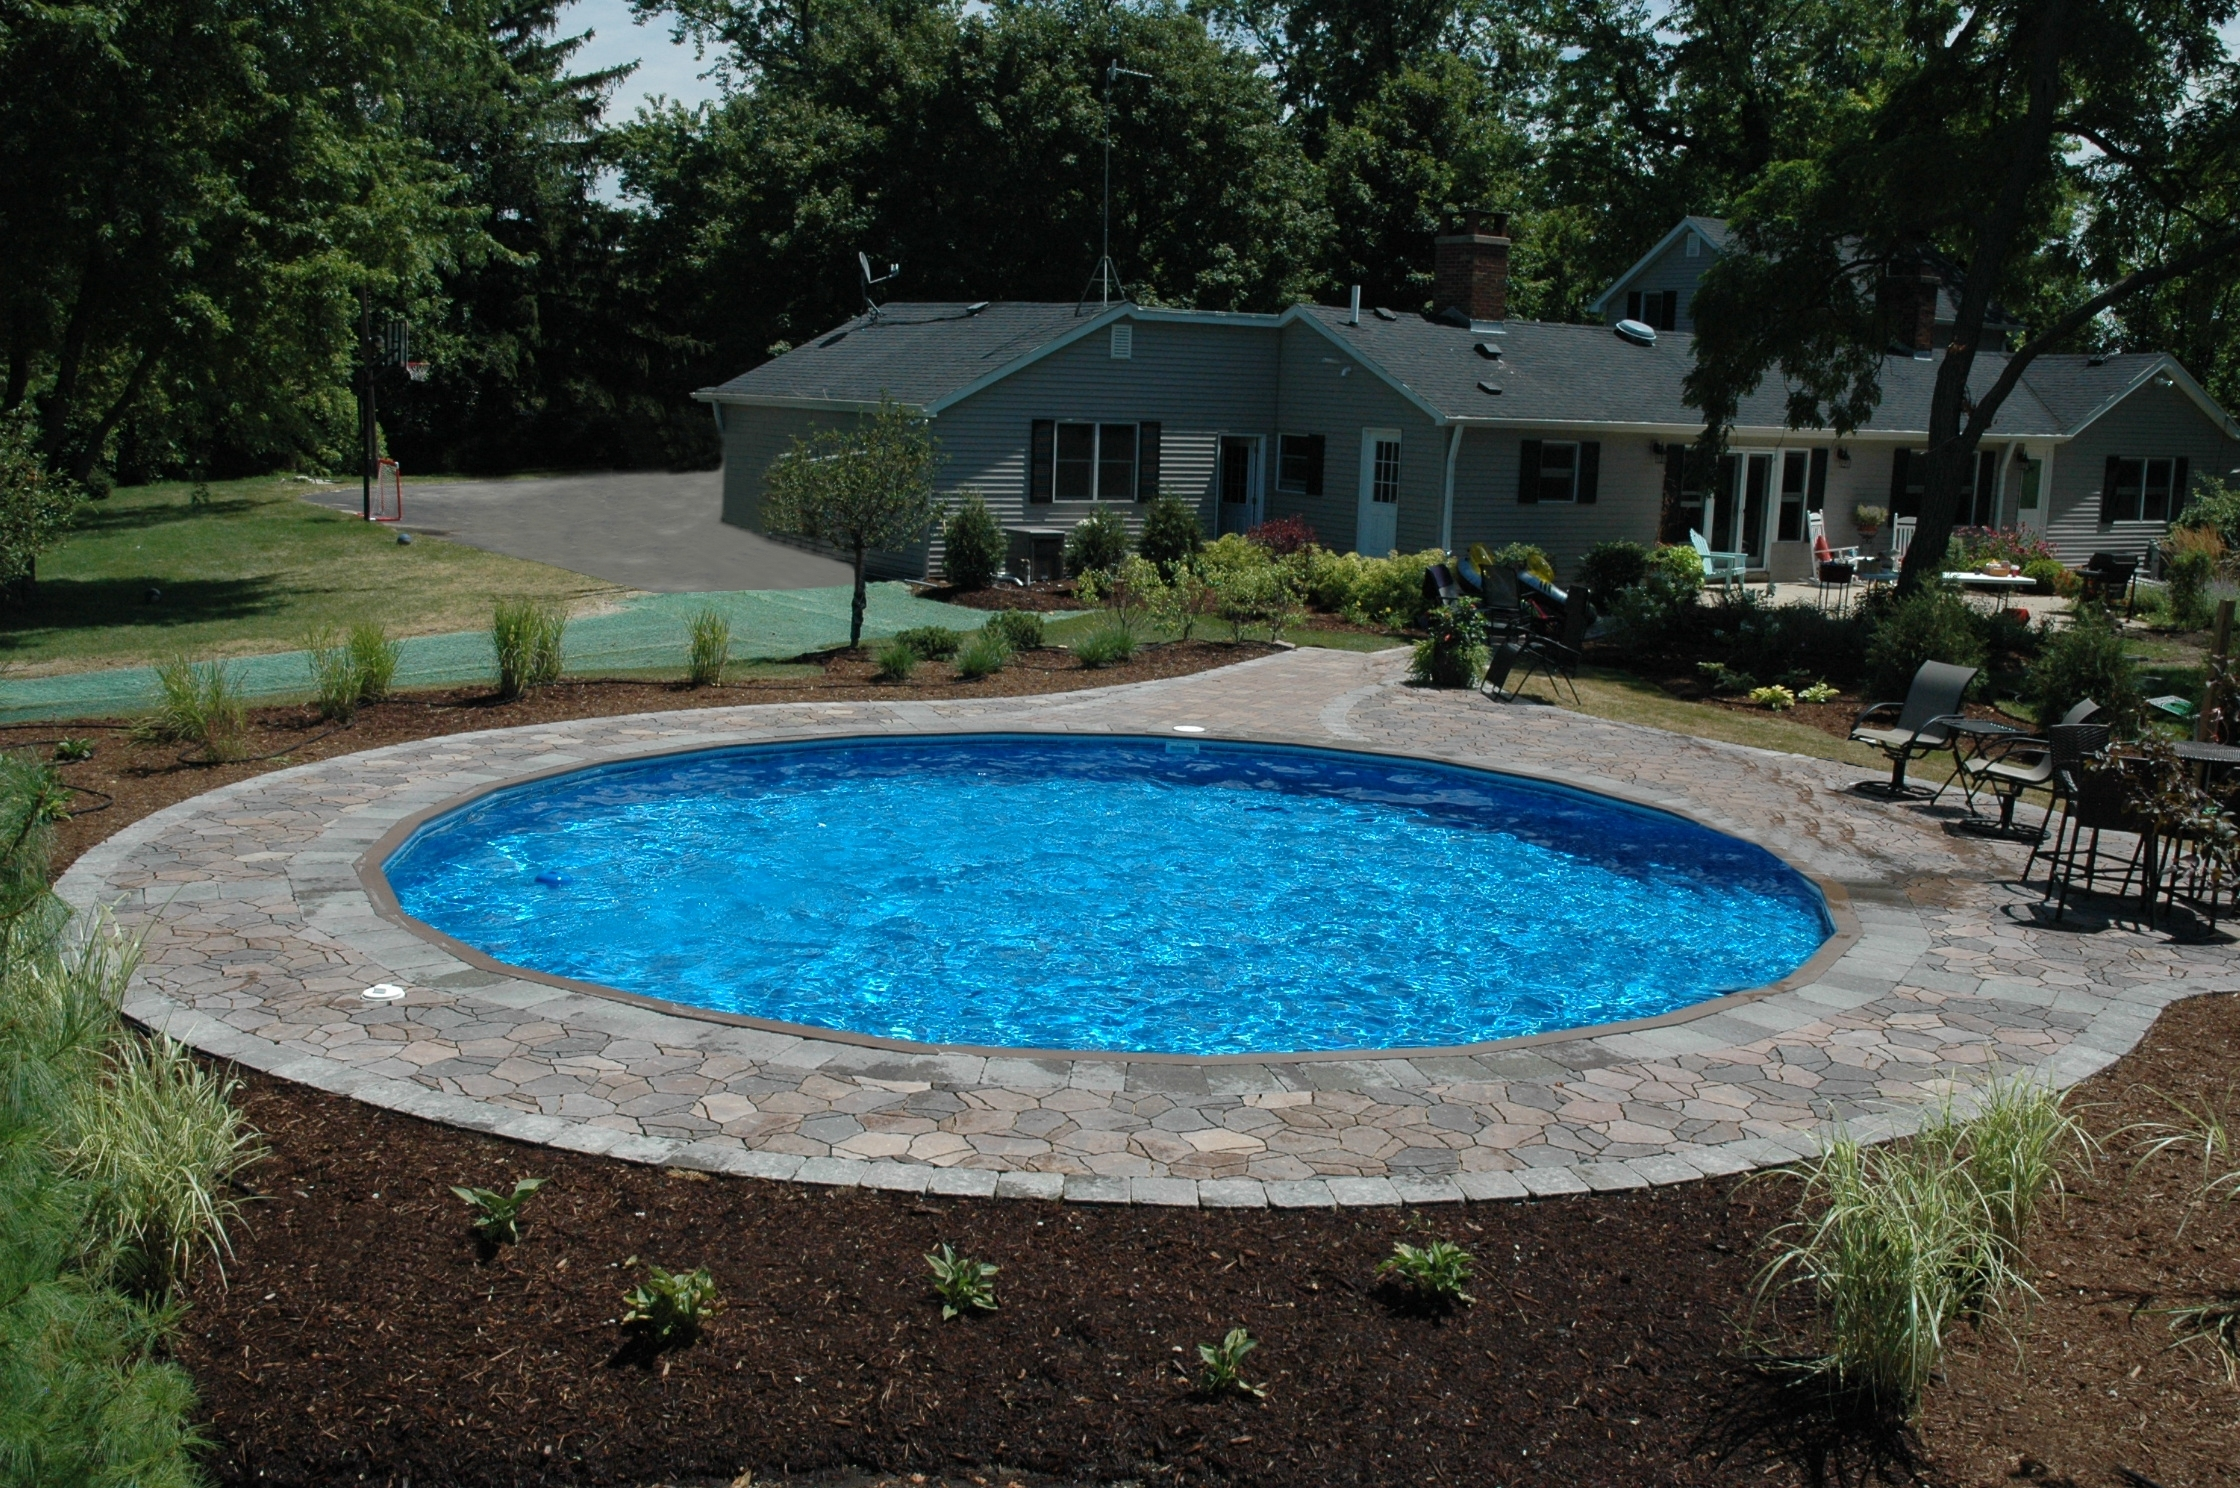 Semi Inground Pools Cost | Best Semi Inground Pool | Semi Inground Pool Ideas